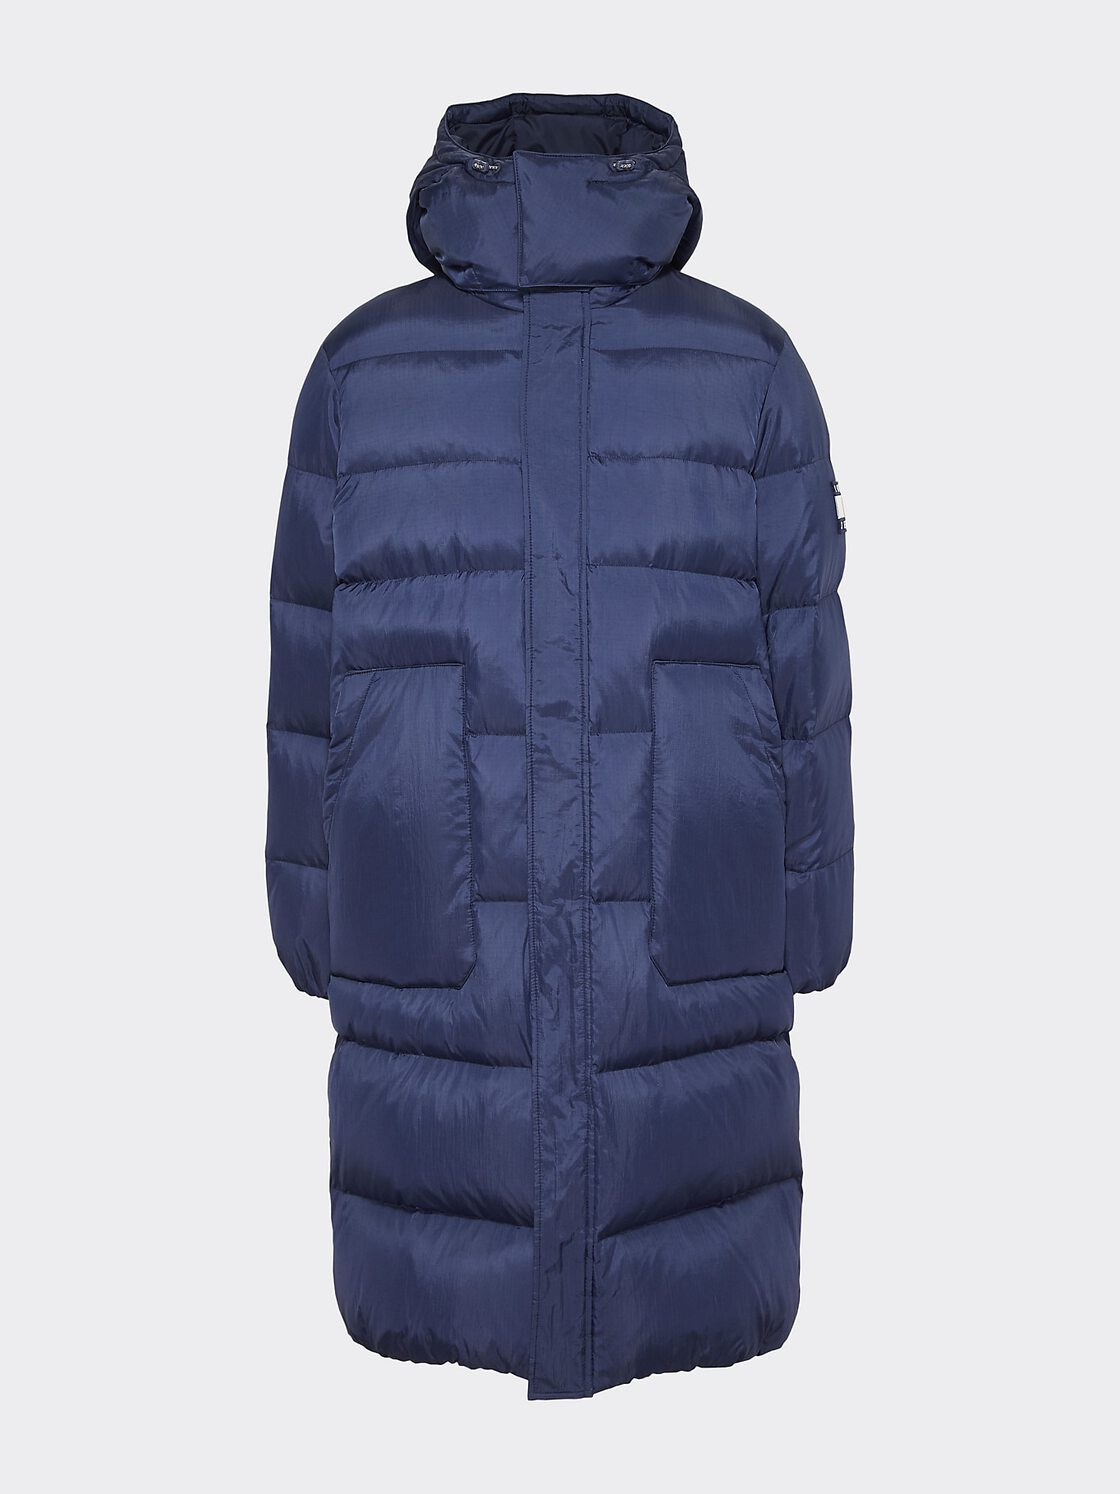 new appearance new list low priced Buy Men's Tommy Jeans Long Padded Parka Blue Online ...